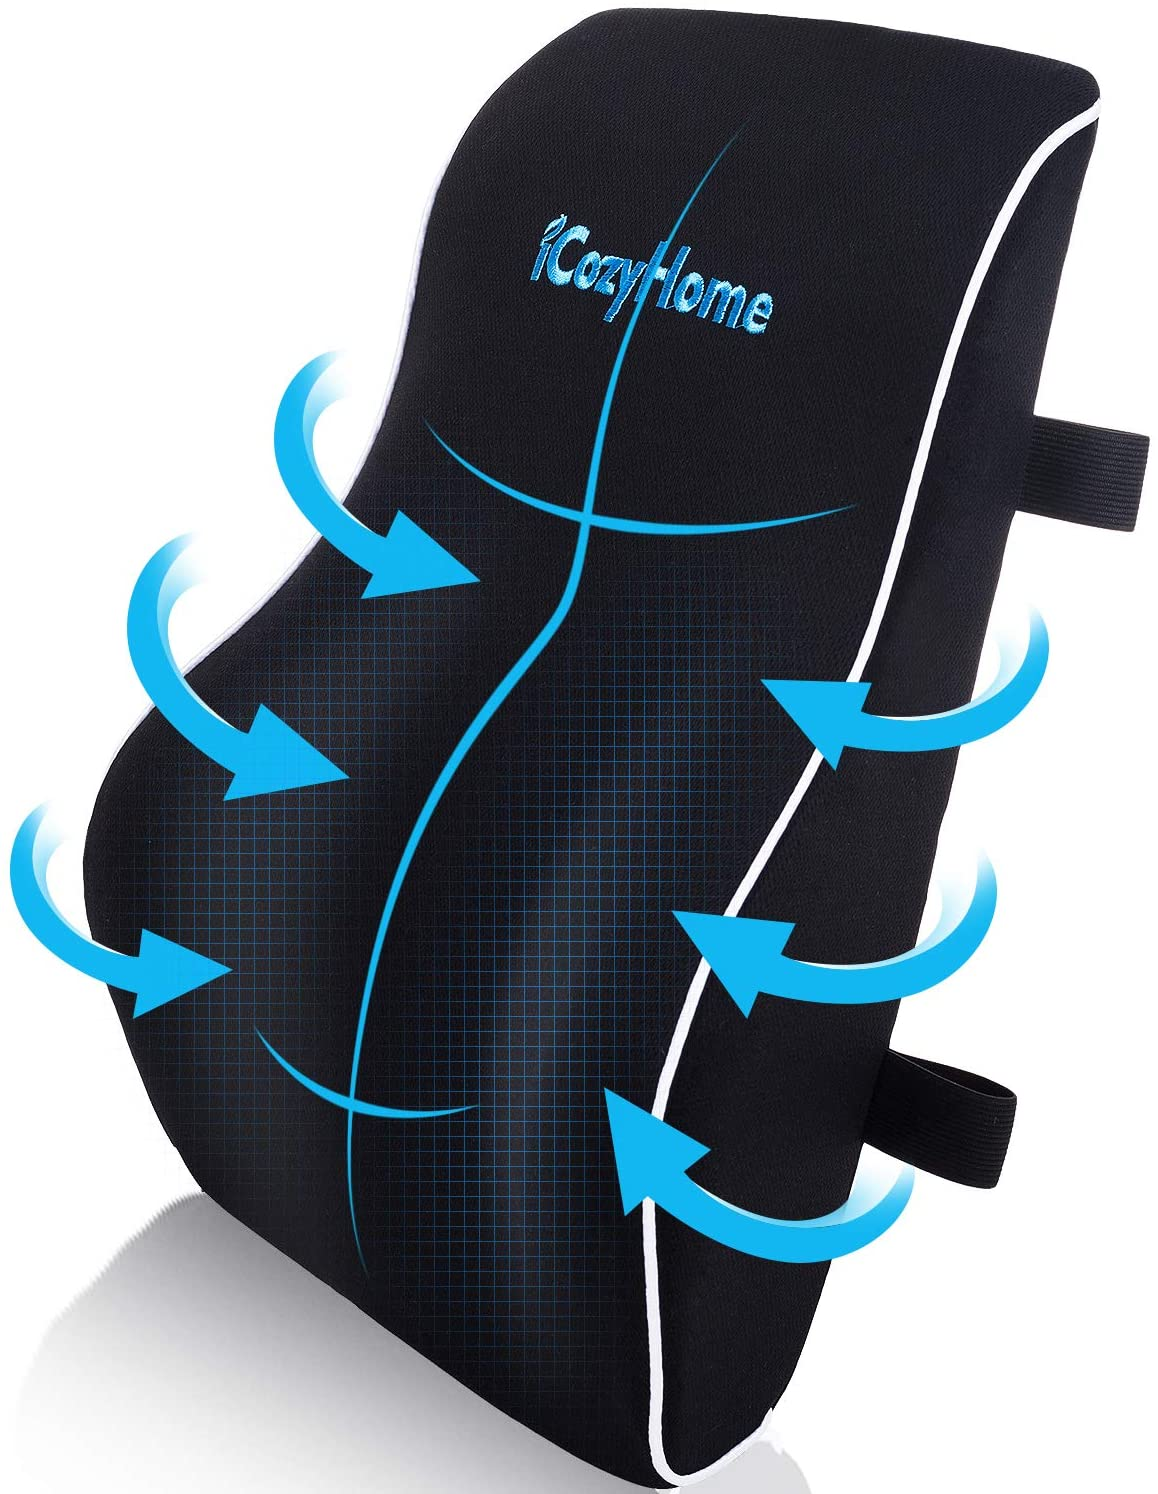 Lumbar Support Pillow for Chair, Lower Back Pillow, Memory Foam Lumbar Pillow for Back Pain, Orthopedic Back Cushion for Computer Chair, Gaming Chair, Office Chair, Car, Mesh Washable Cover